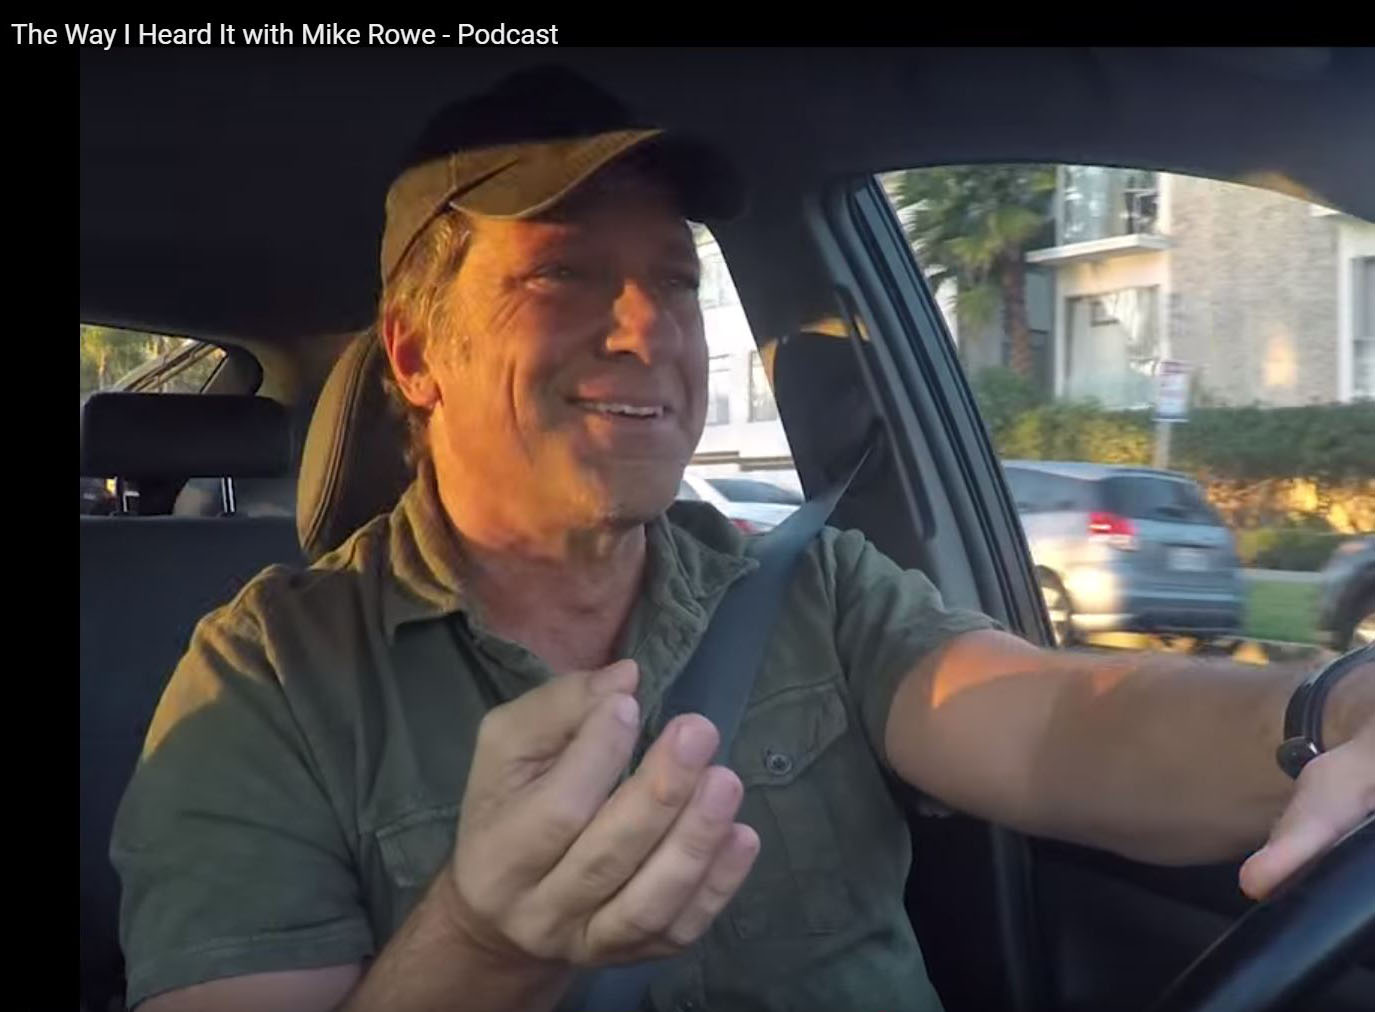 Mikeroweworks podcast